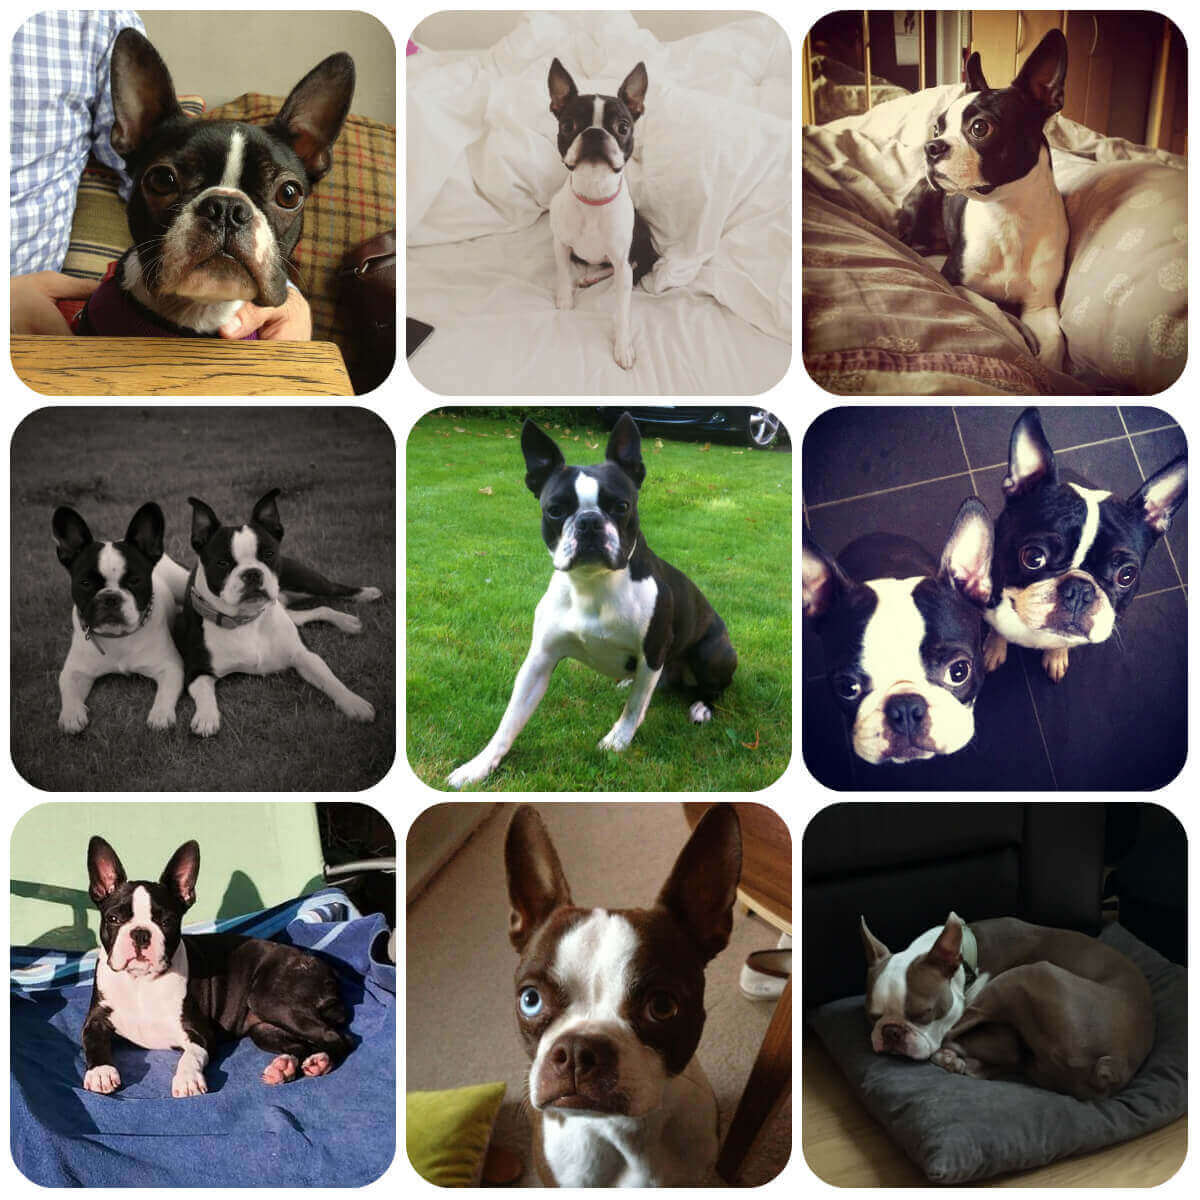 collage of boston terrier dogs and puppies, part of borrowmydoggy's guide to dog breeds